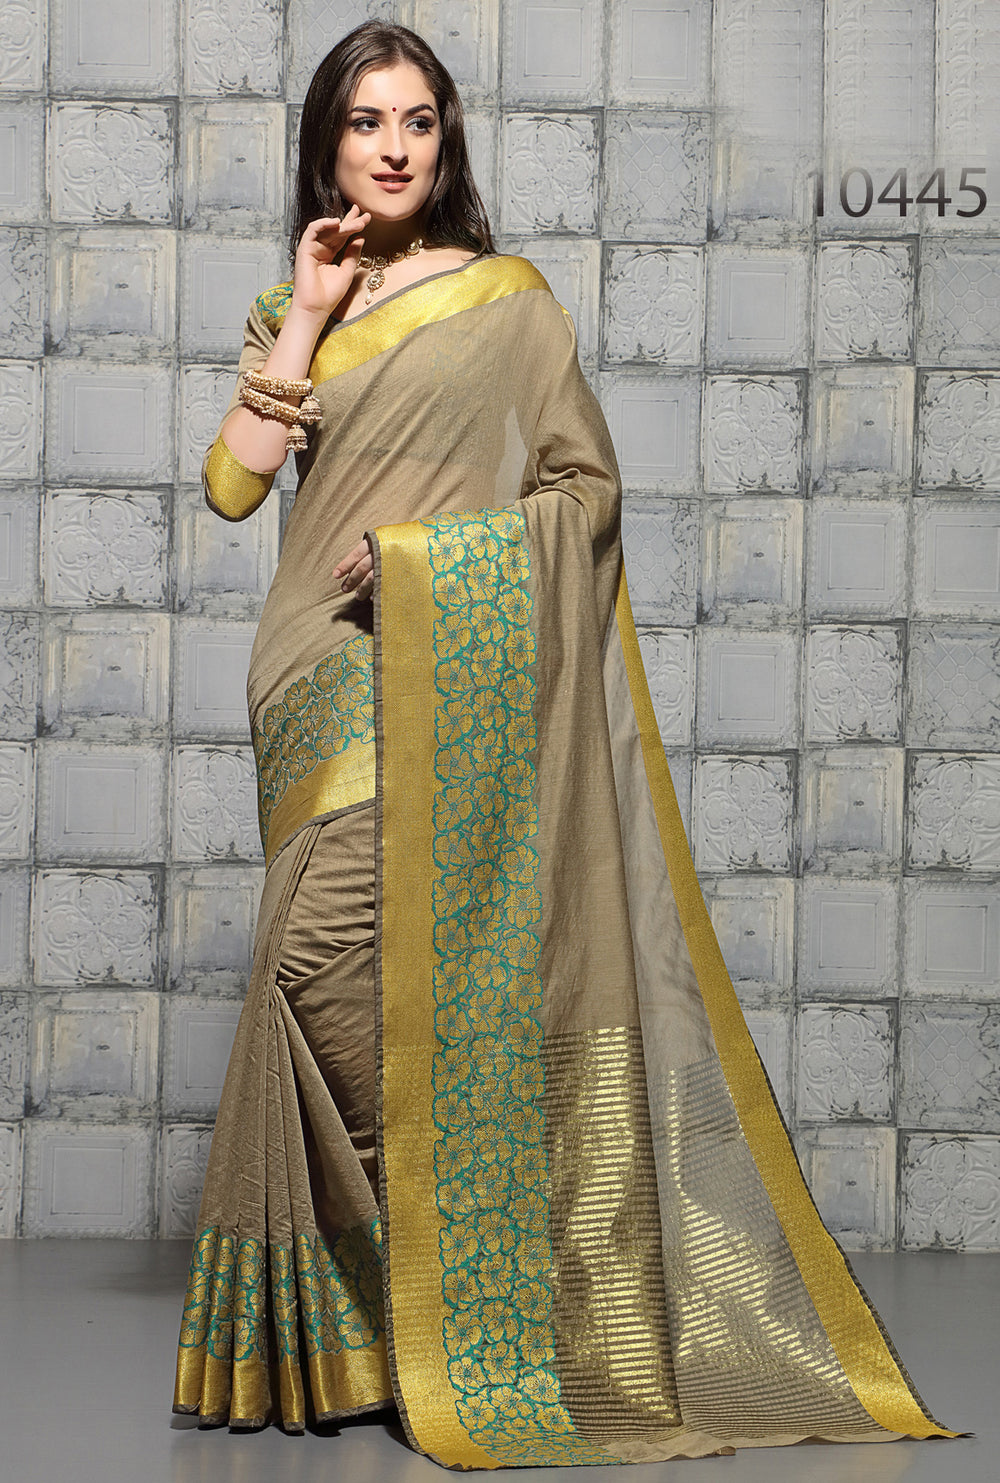 Roop Kashish Women Beige Party Wear woven Cotton Printed Saree And Border And Cotton Blouse Material_RKSCSUNAHARI10445